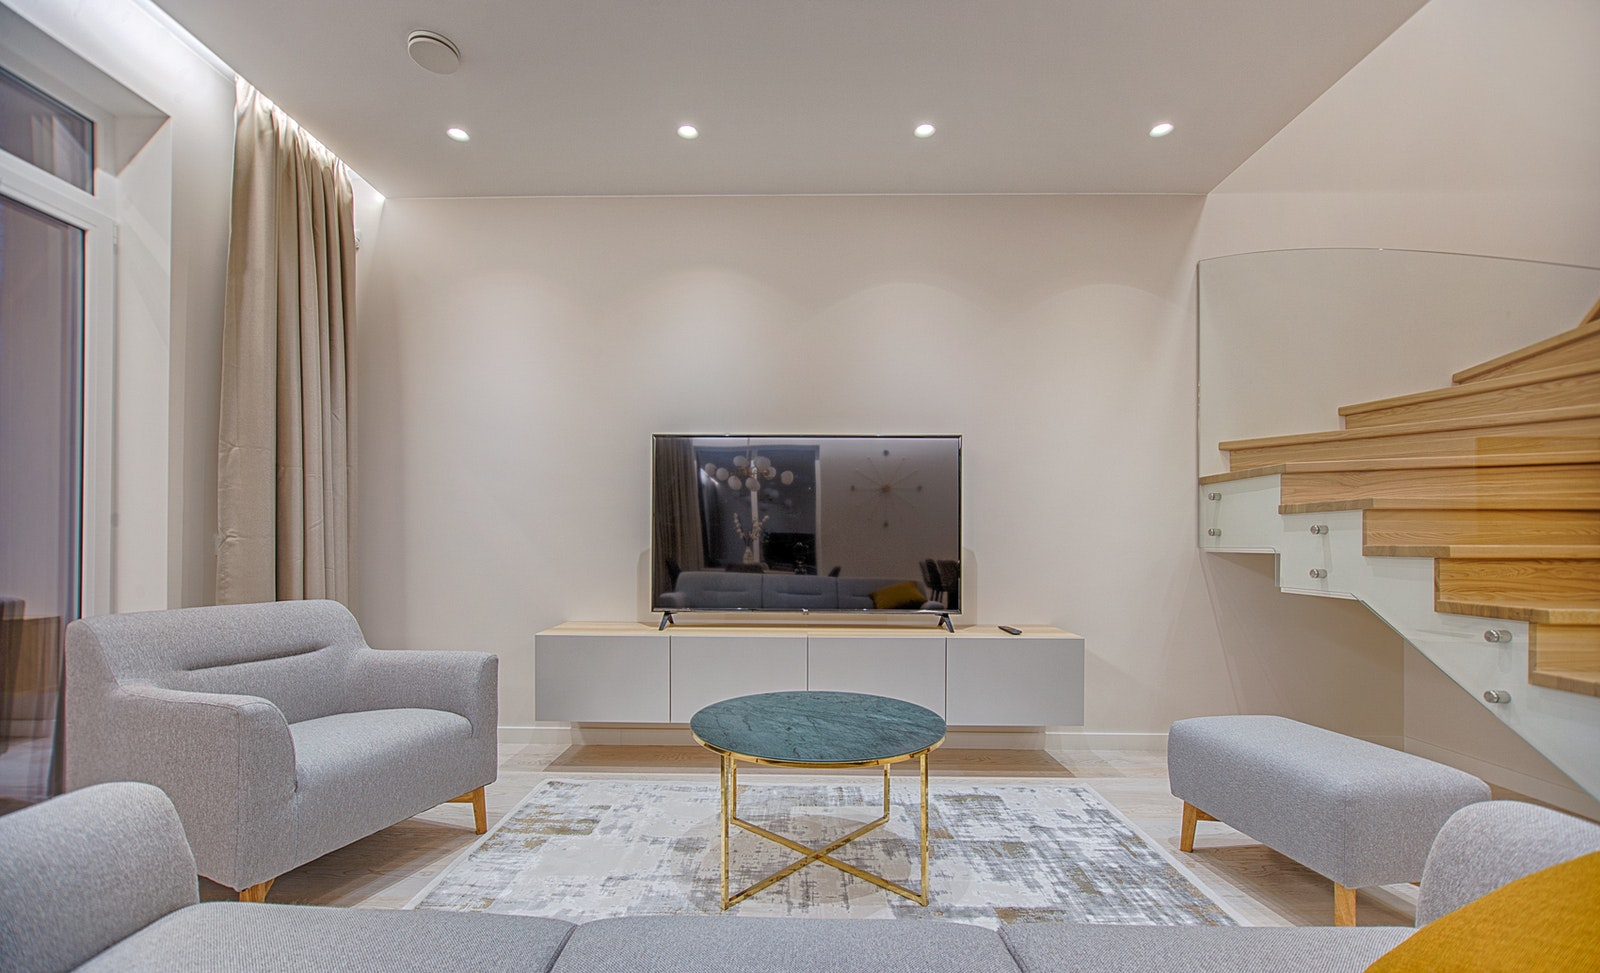 How To Pick Your Downlighting | Best Downlights For 2019